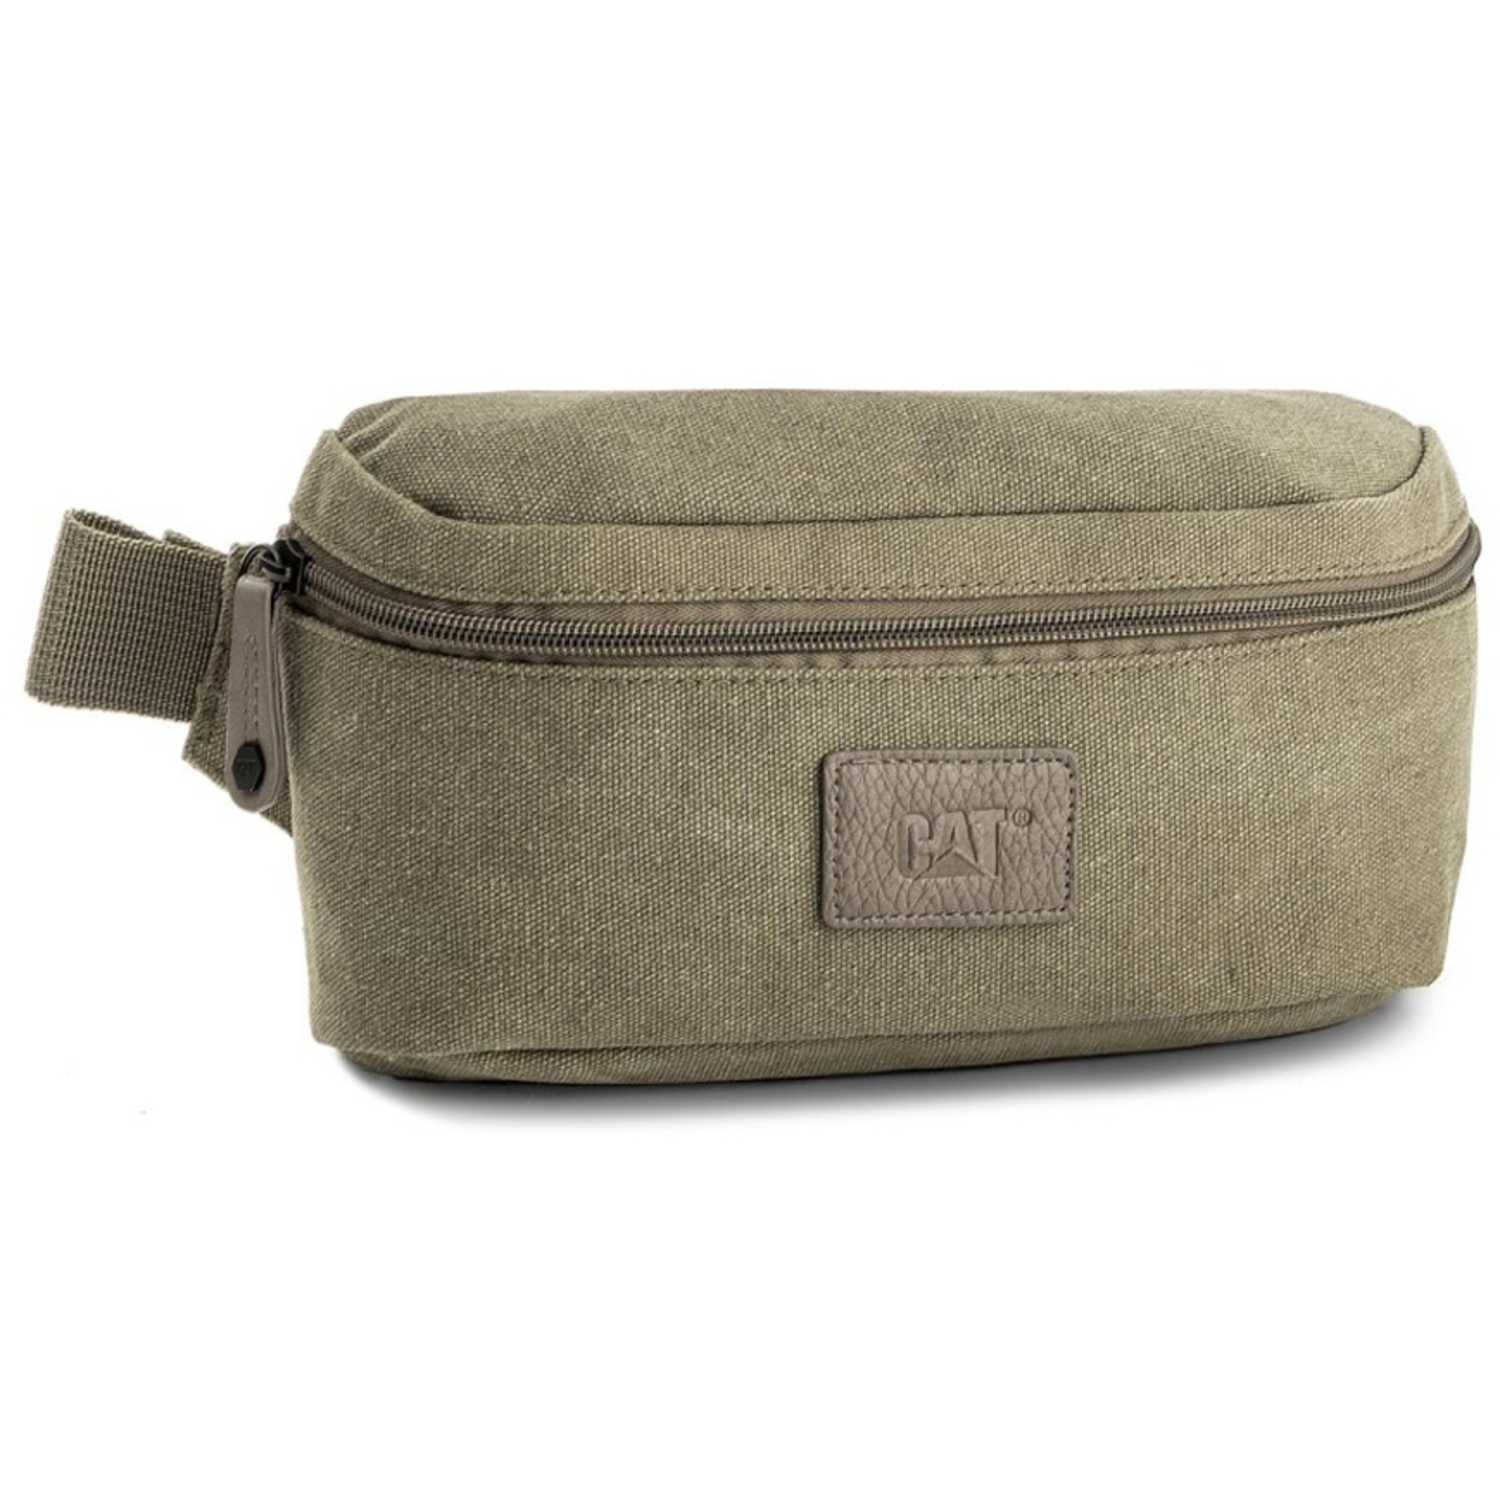 CAT waist bag Marrón claro